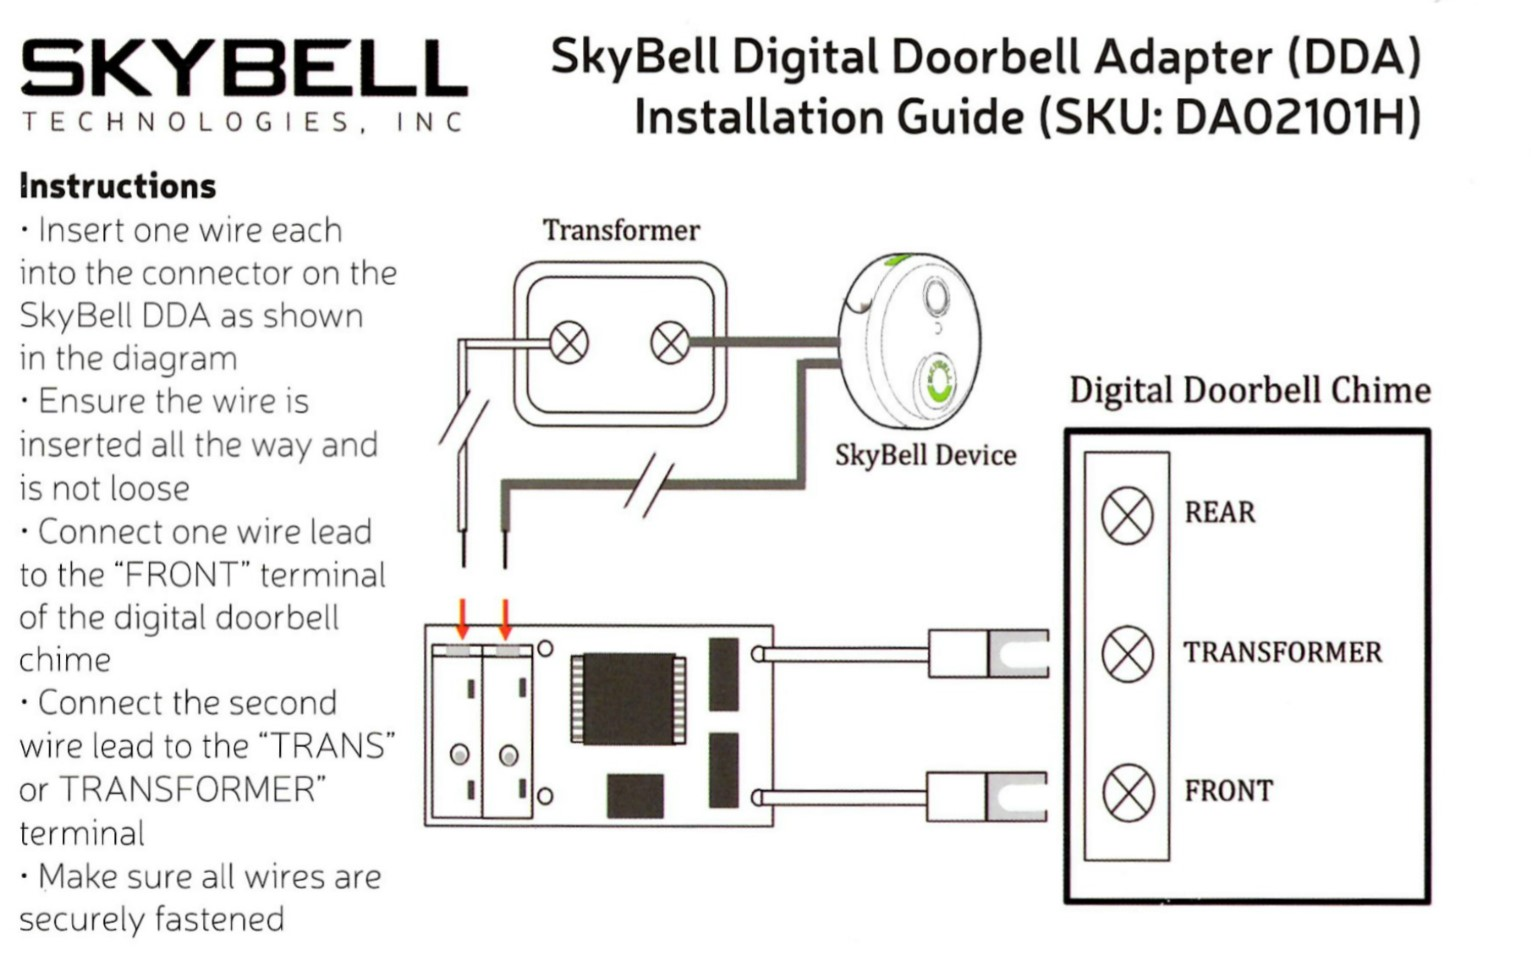 hight resolution of dda instructions jpg digital doorbell adapter installation video